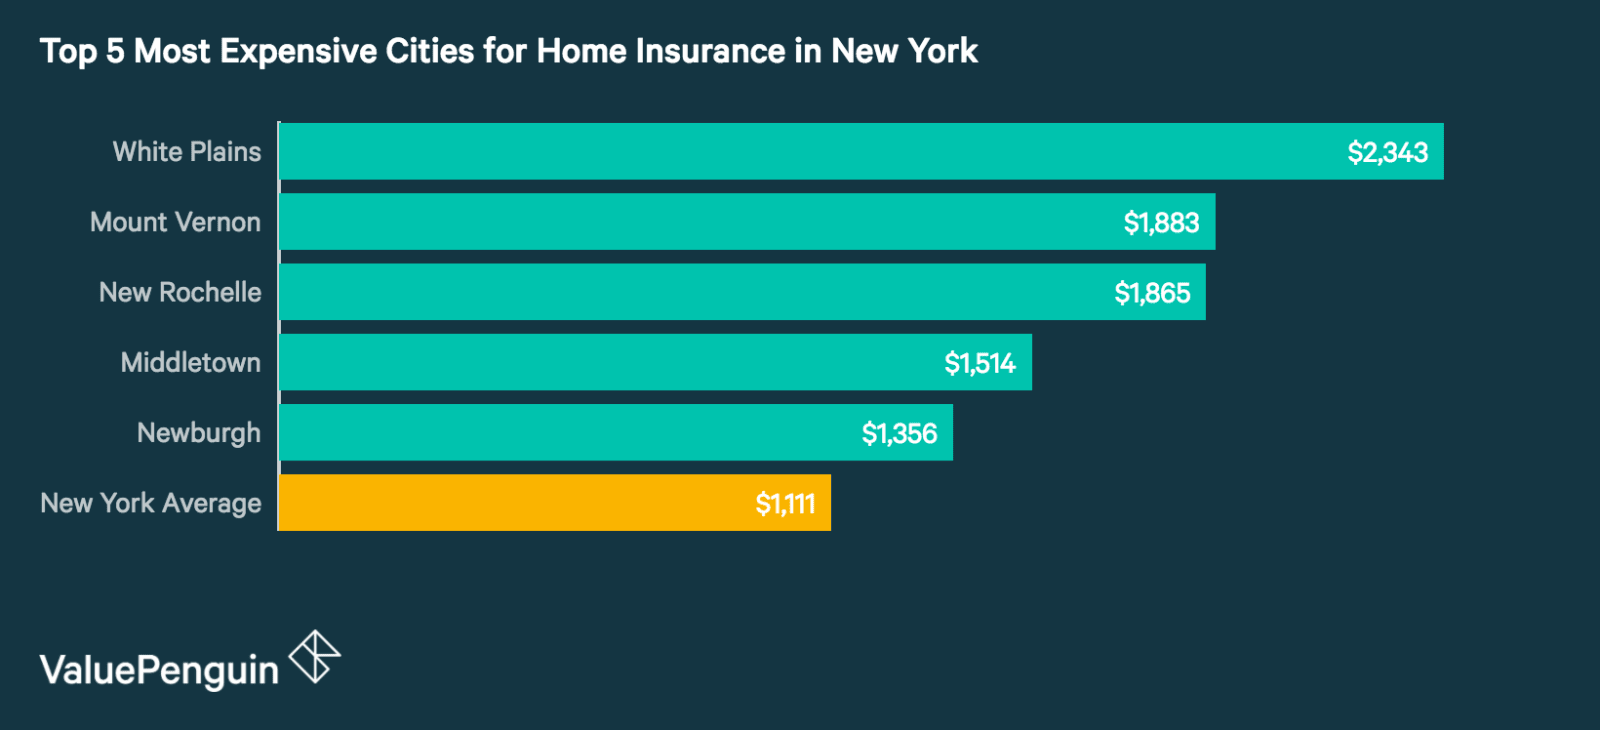 Top 5 Most Expensive Cities in New York for Homeowners Insurance